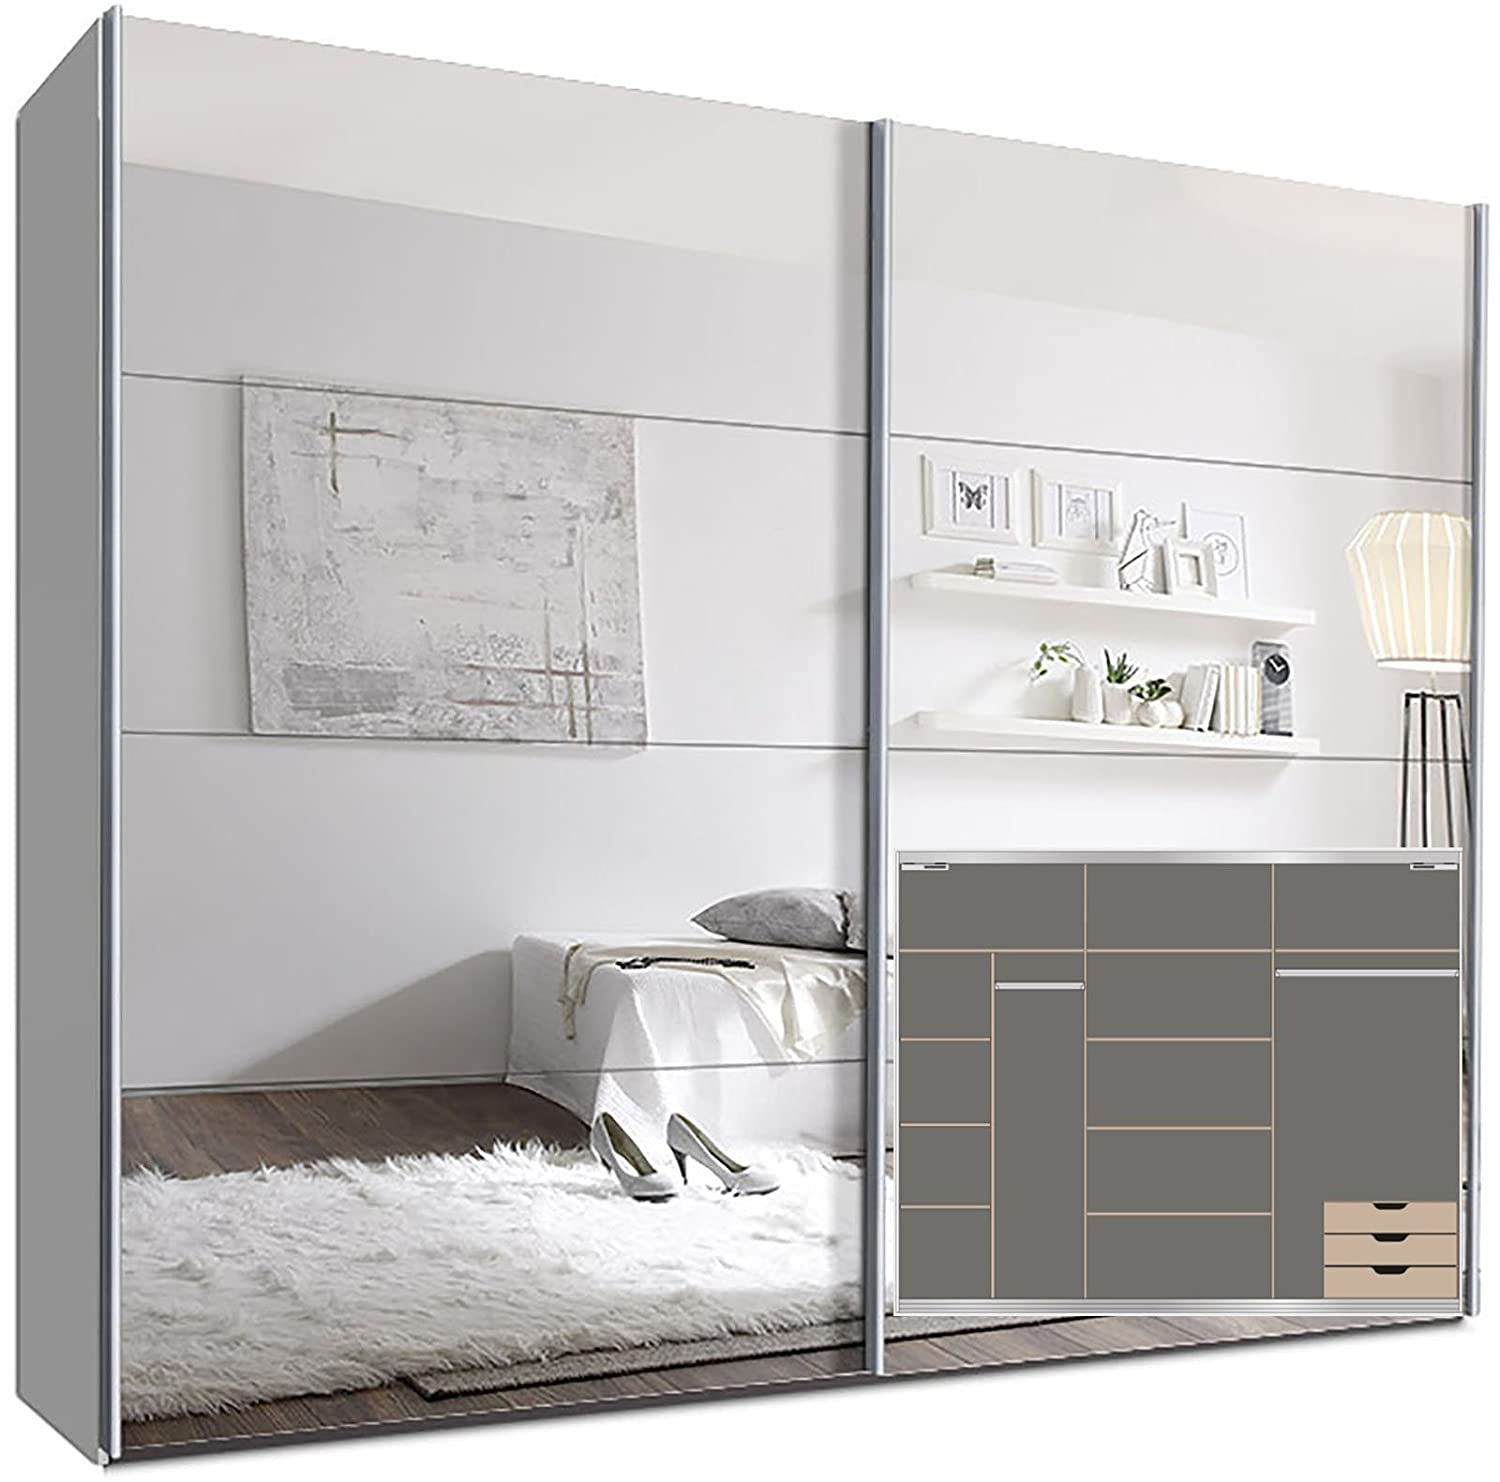 schwebet renschrank switchbox 270 cm wei mit spiegelt ren. Black Bedroom Furniture Sets. Home Design Ideas